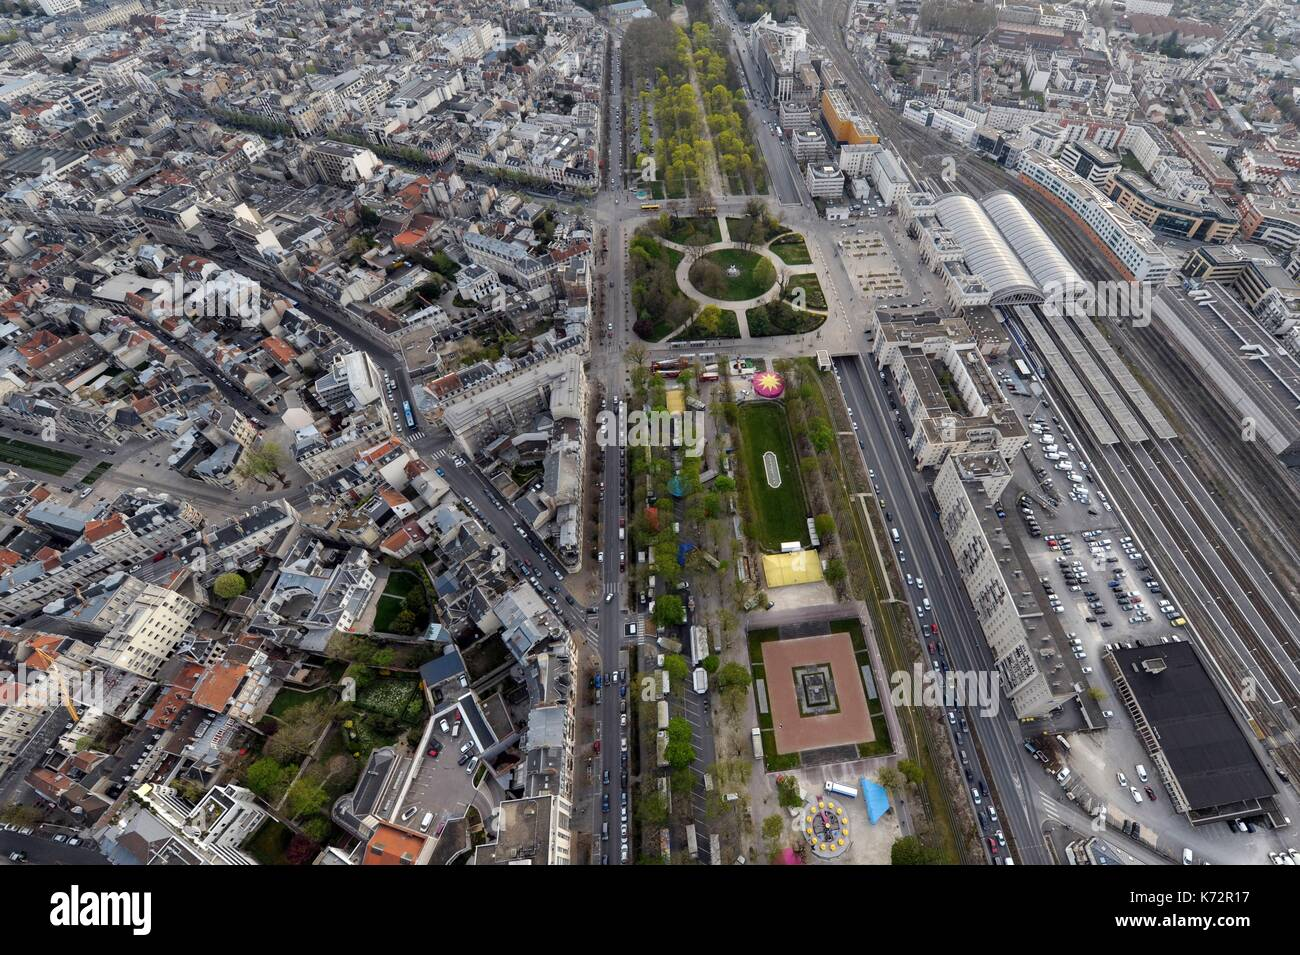 France, Marne, Reims, Reims station, promenades and city center (aerial view) - Stock Image